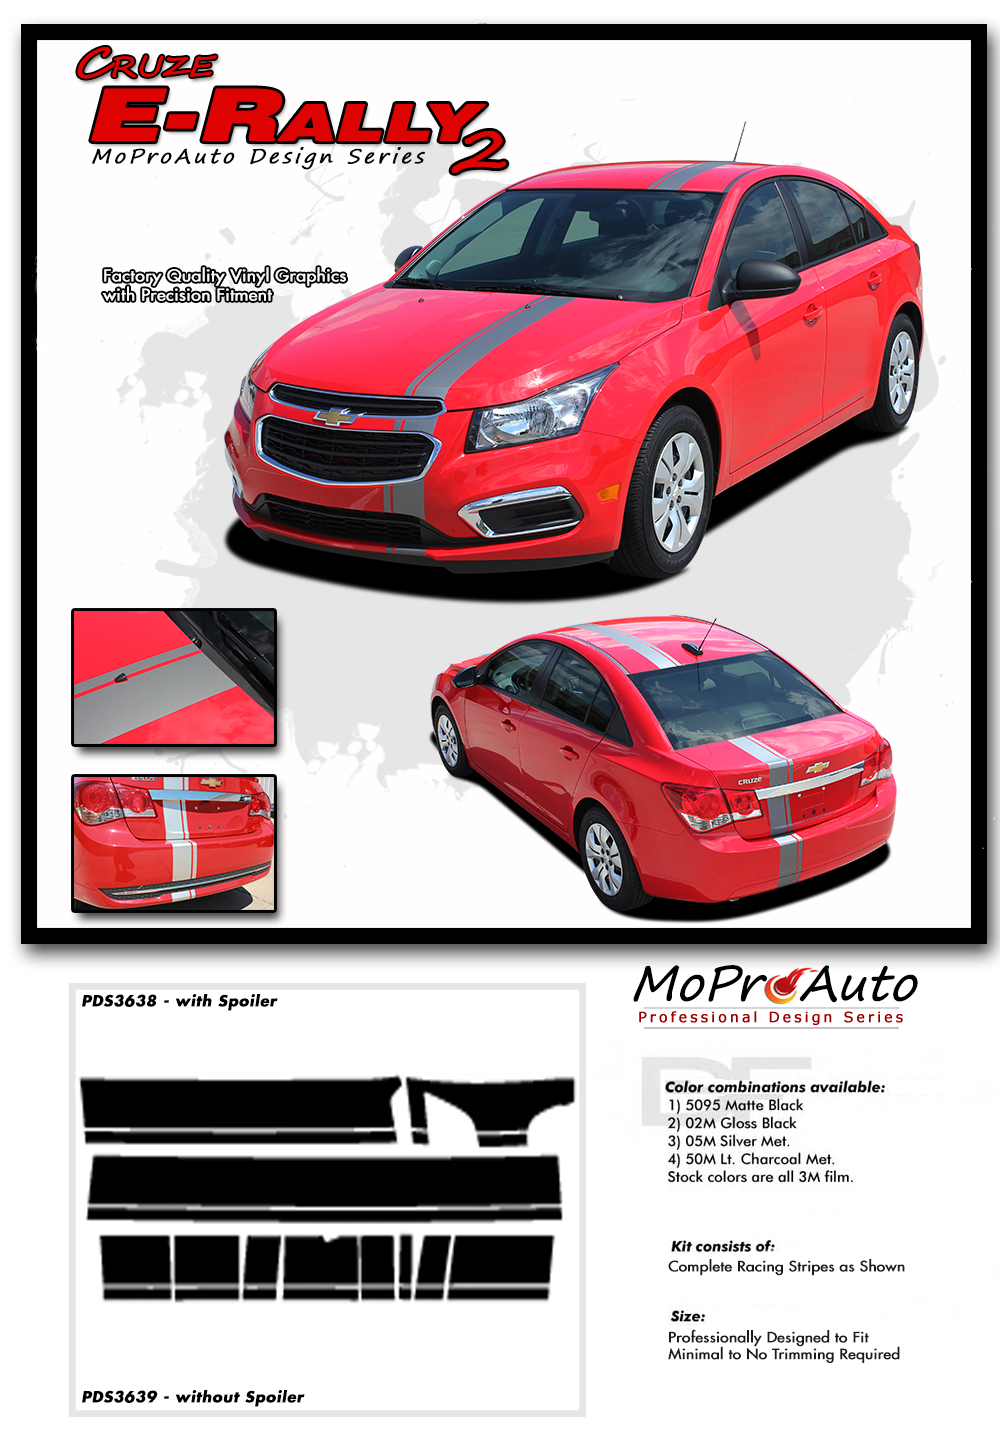 Chevy Cruze E-RALLY STRIPES Vinyl Graphics, Stripes and Decals Set